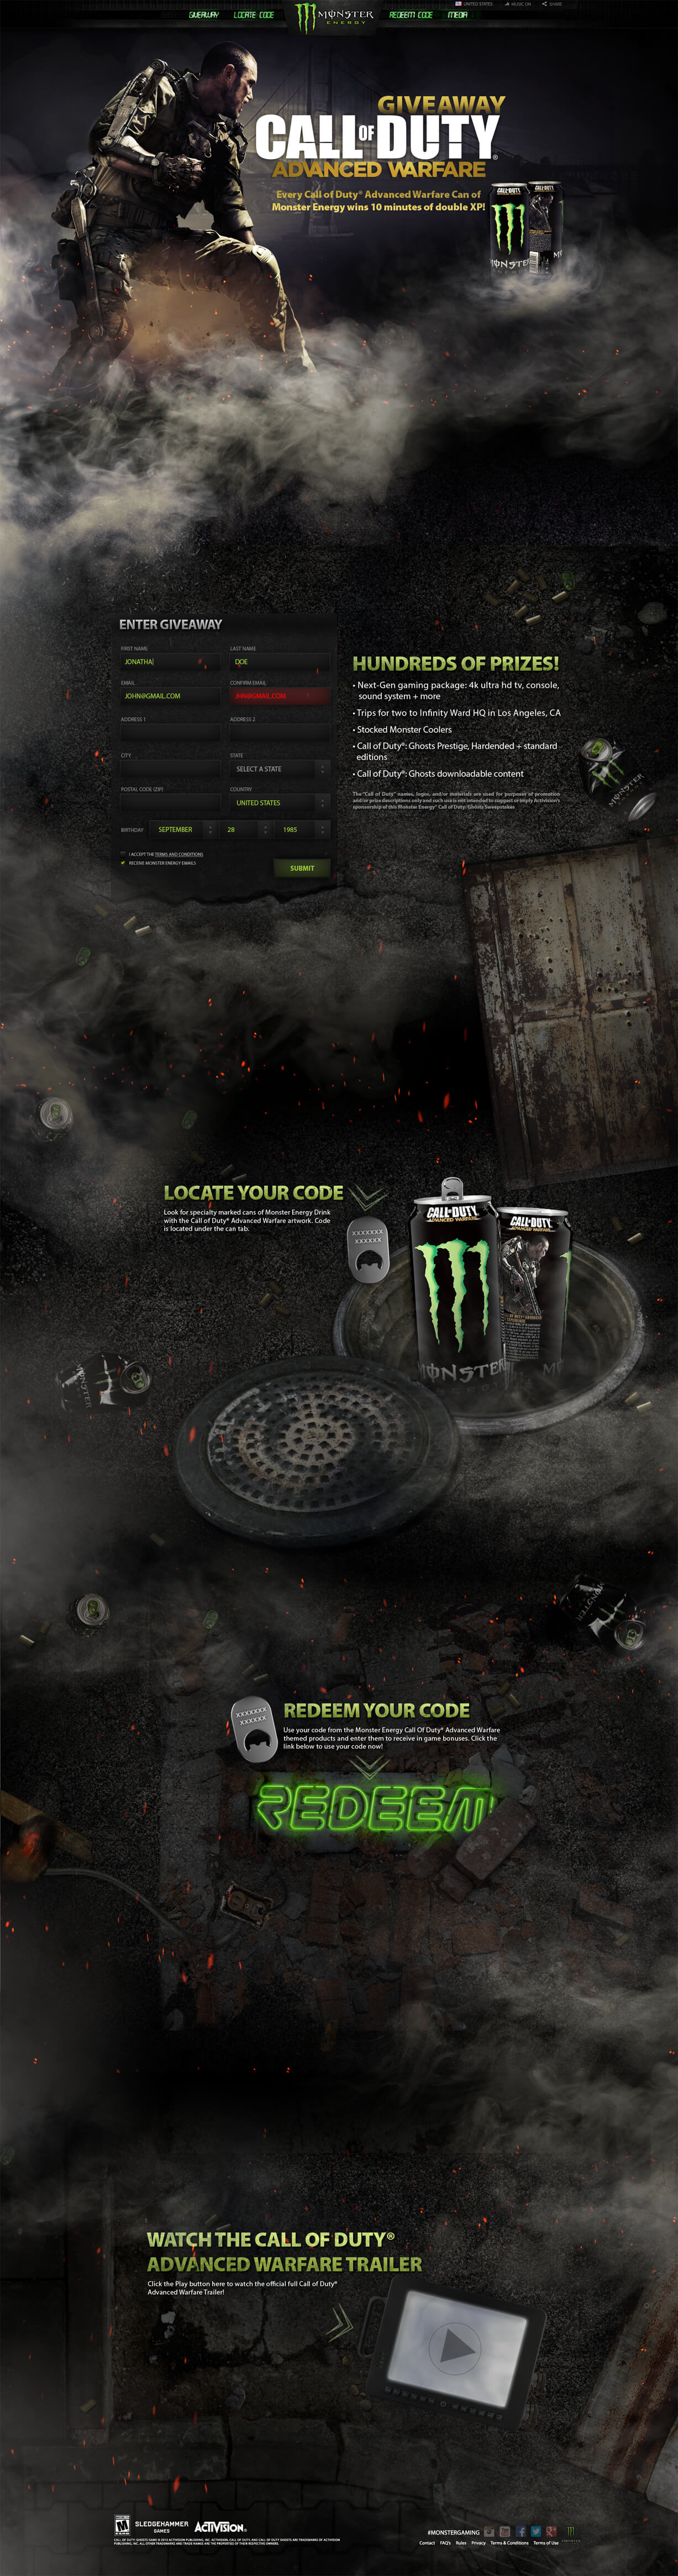 Monster Energy, Call of Duty Promotional Site,Ekko Media web design, video production and marketing